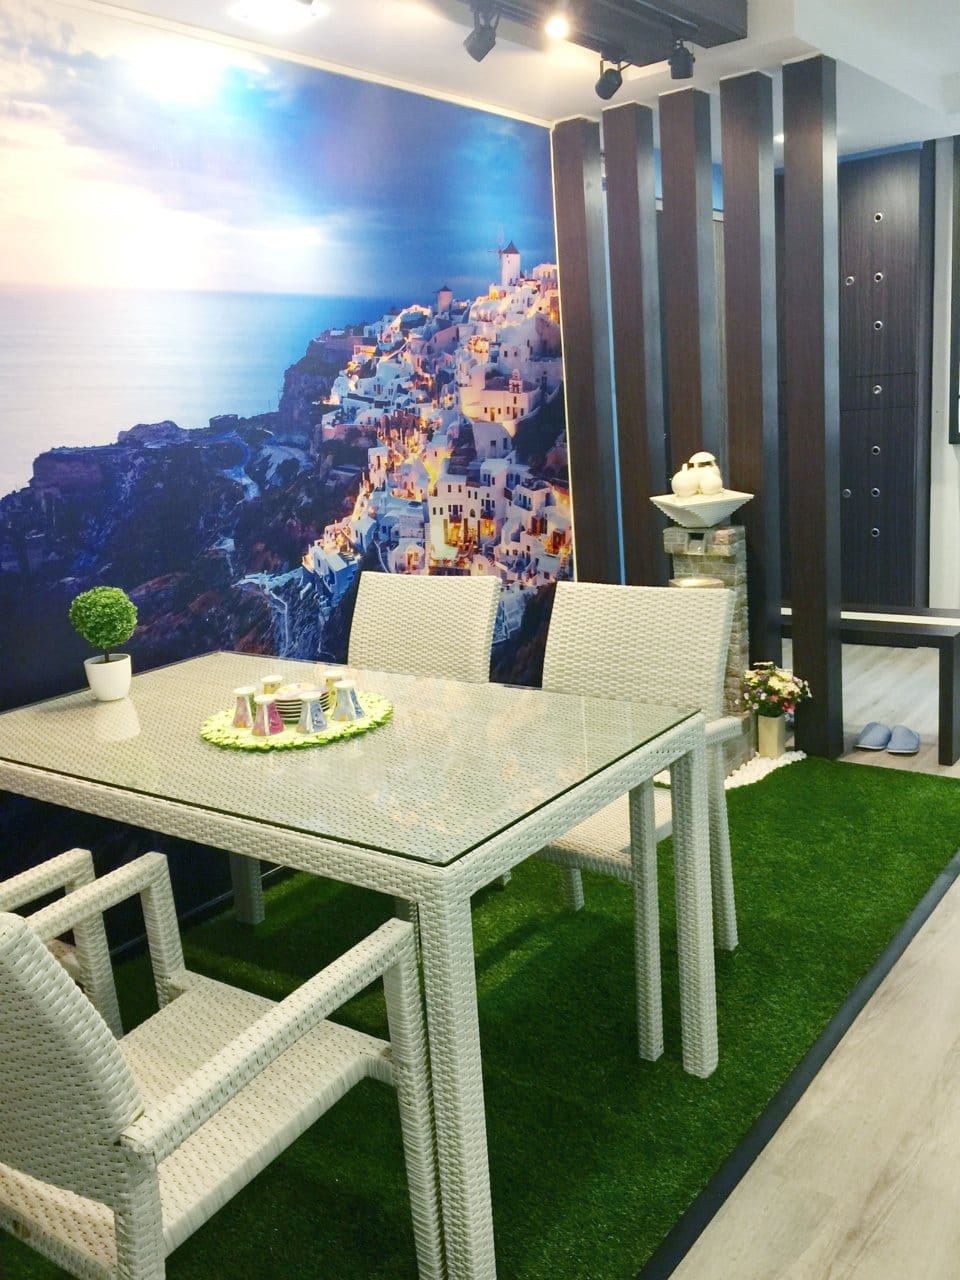 Apartment - Eunos | Products Seen: [Synthetic Grass Carpet, Dayboro Outdoor Dining Table – Rectangle, Maldives Outdoor Armchair & Plant – Clover Tree]